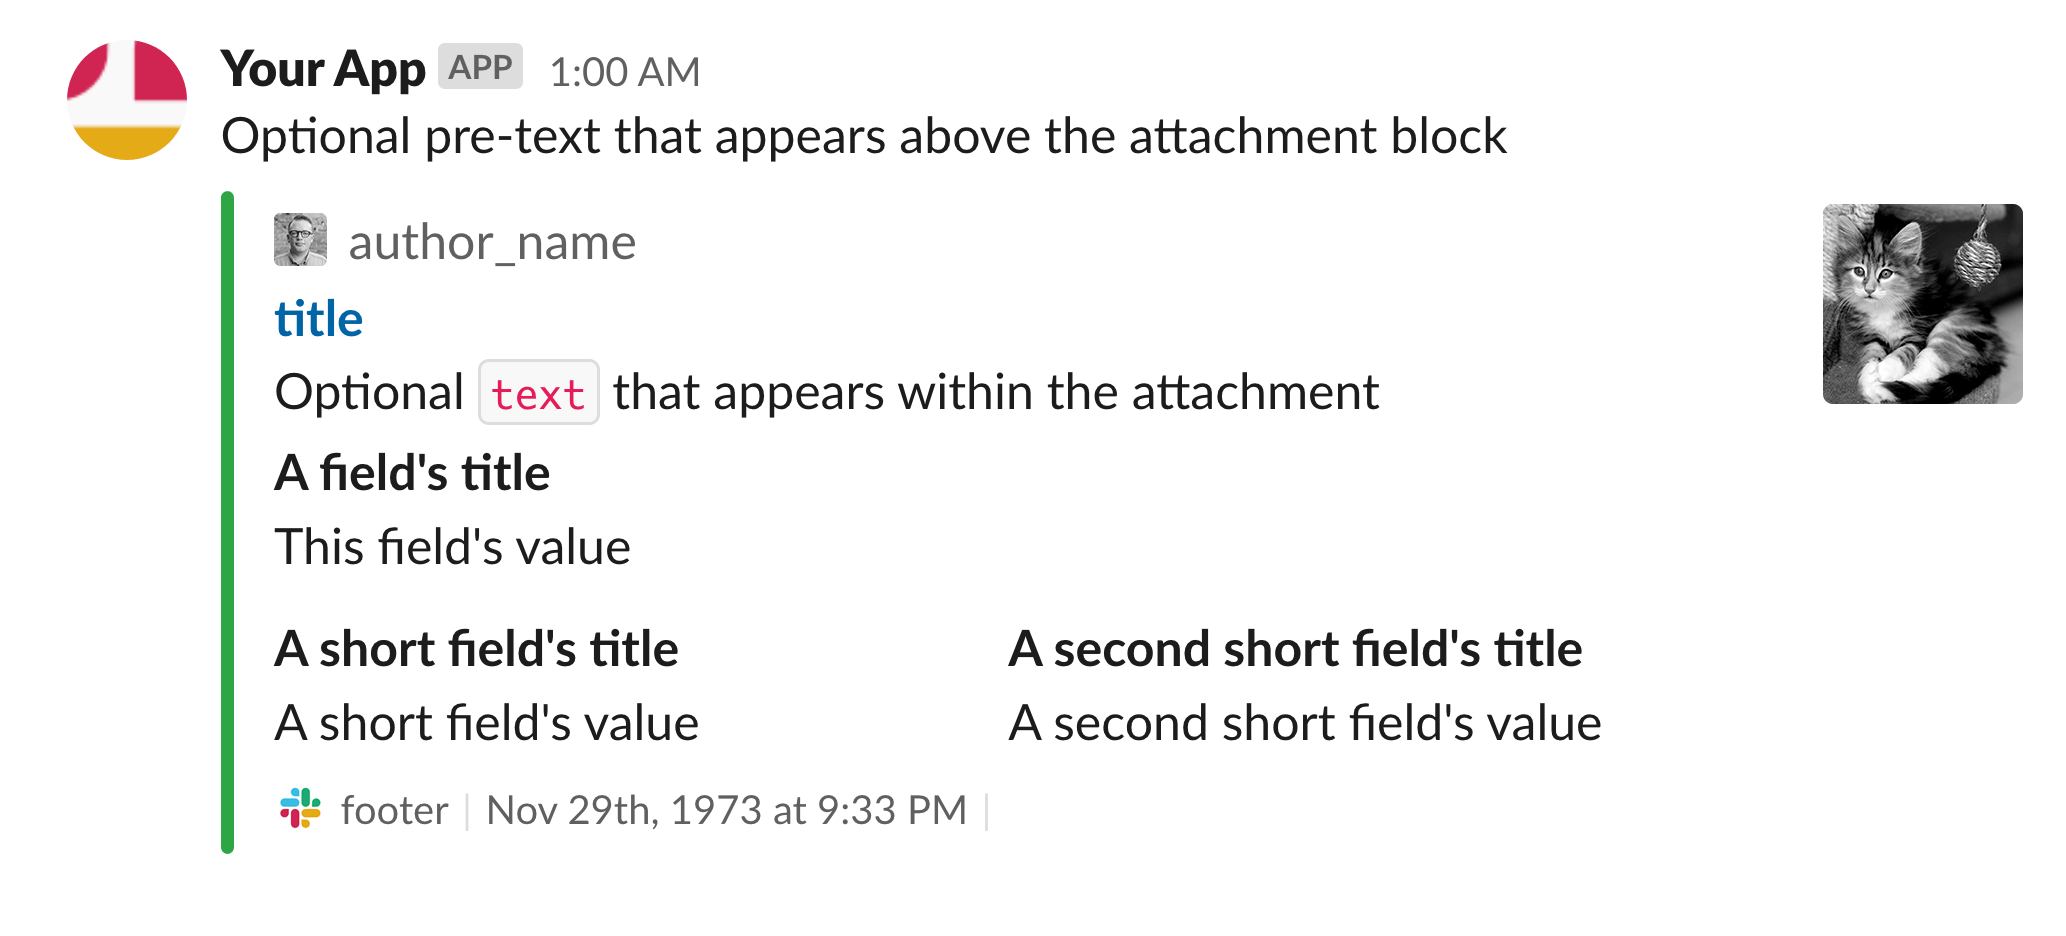 Example message with attachment showing full range of fields